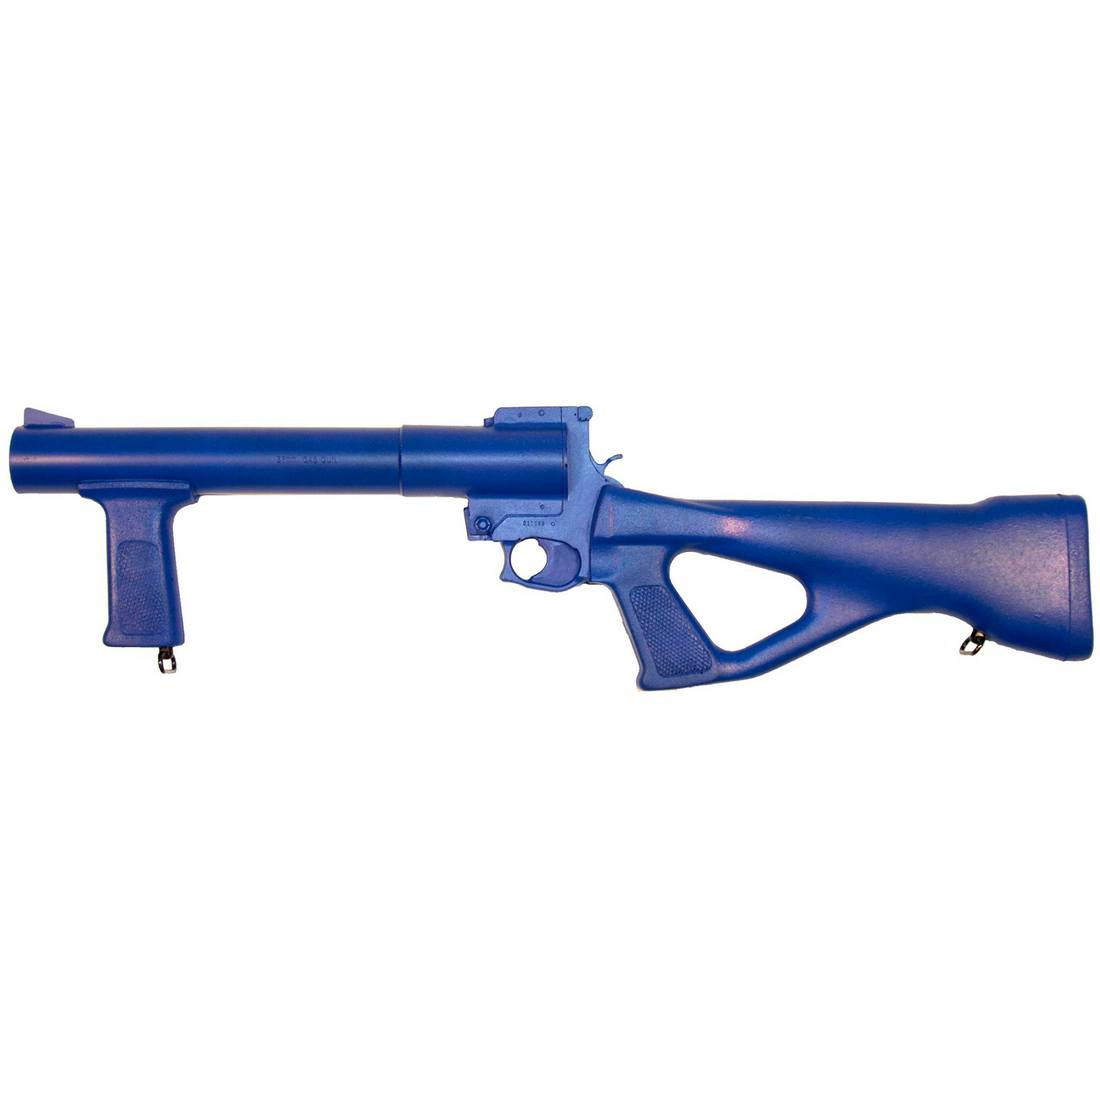 Blueguns FS37MMGG 37MM Gas Gun w/14